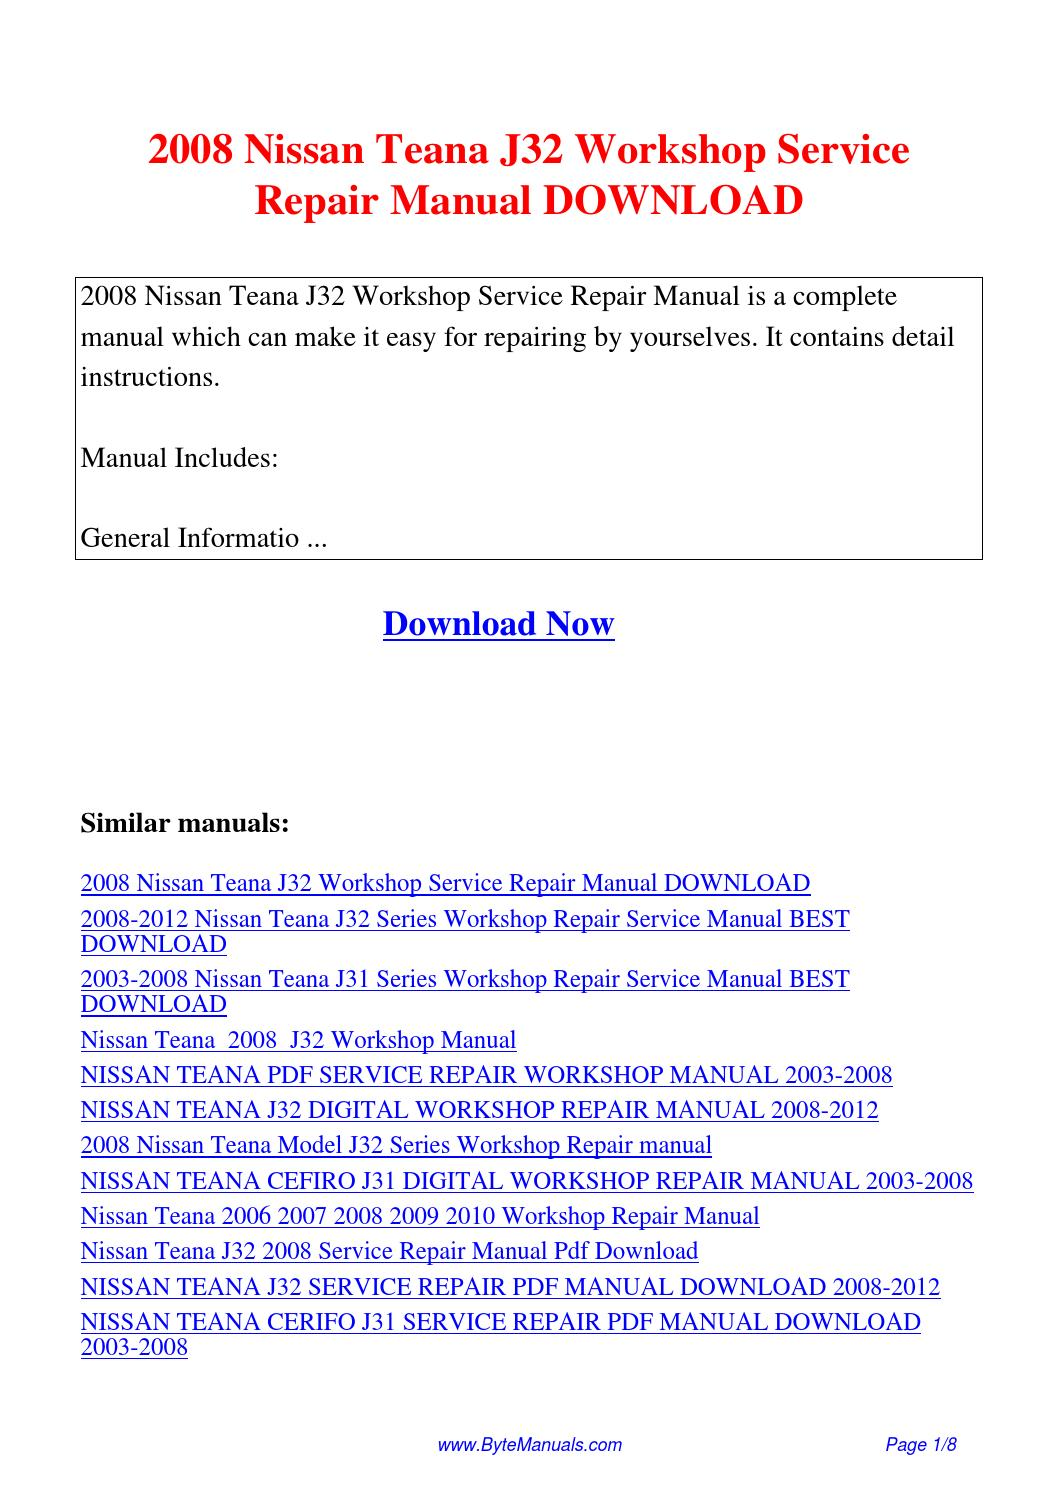 2008 Nissan Teana J32 Workshop Service Repair Manual.pdf by Ging Tang -  issuu